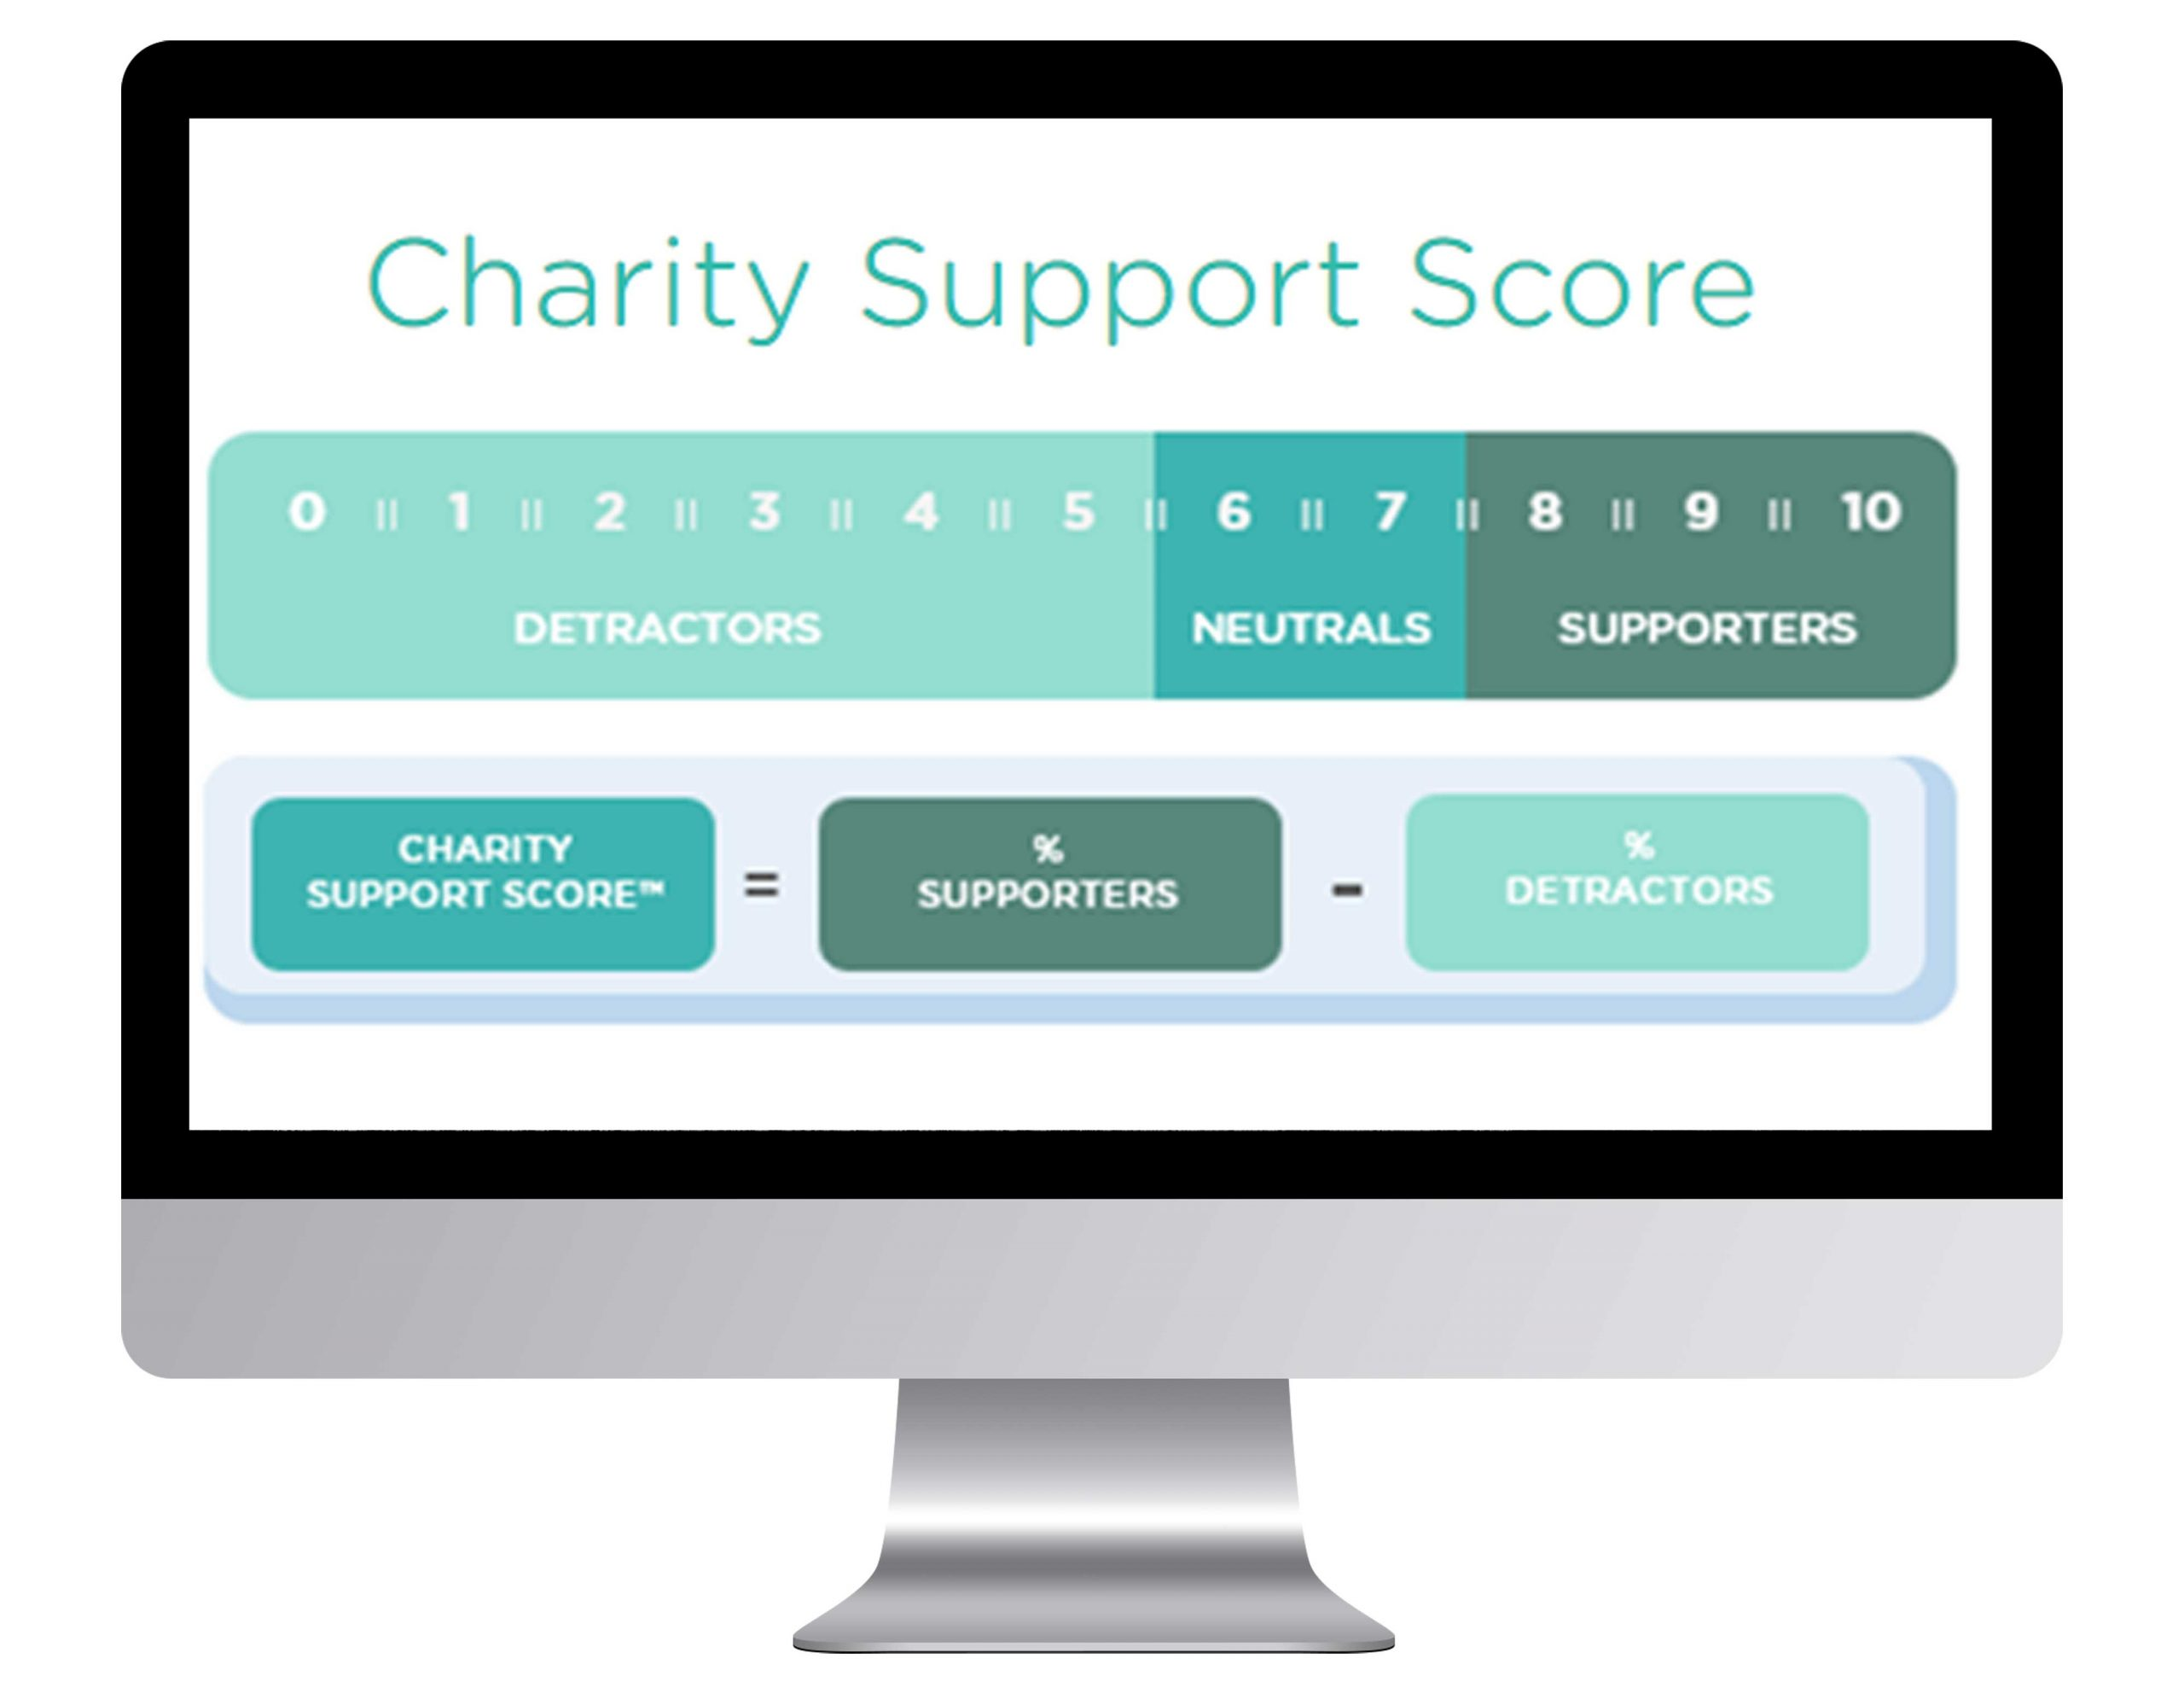 Charity Support Score